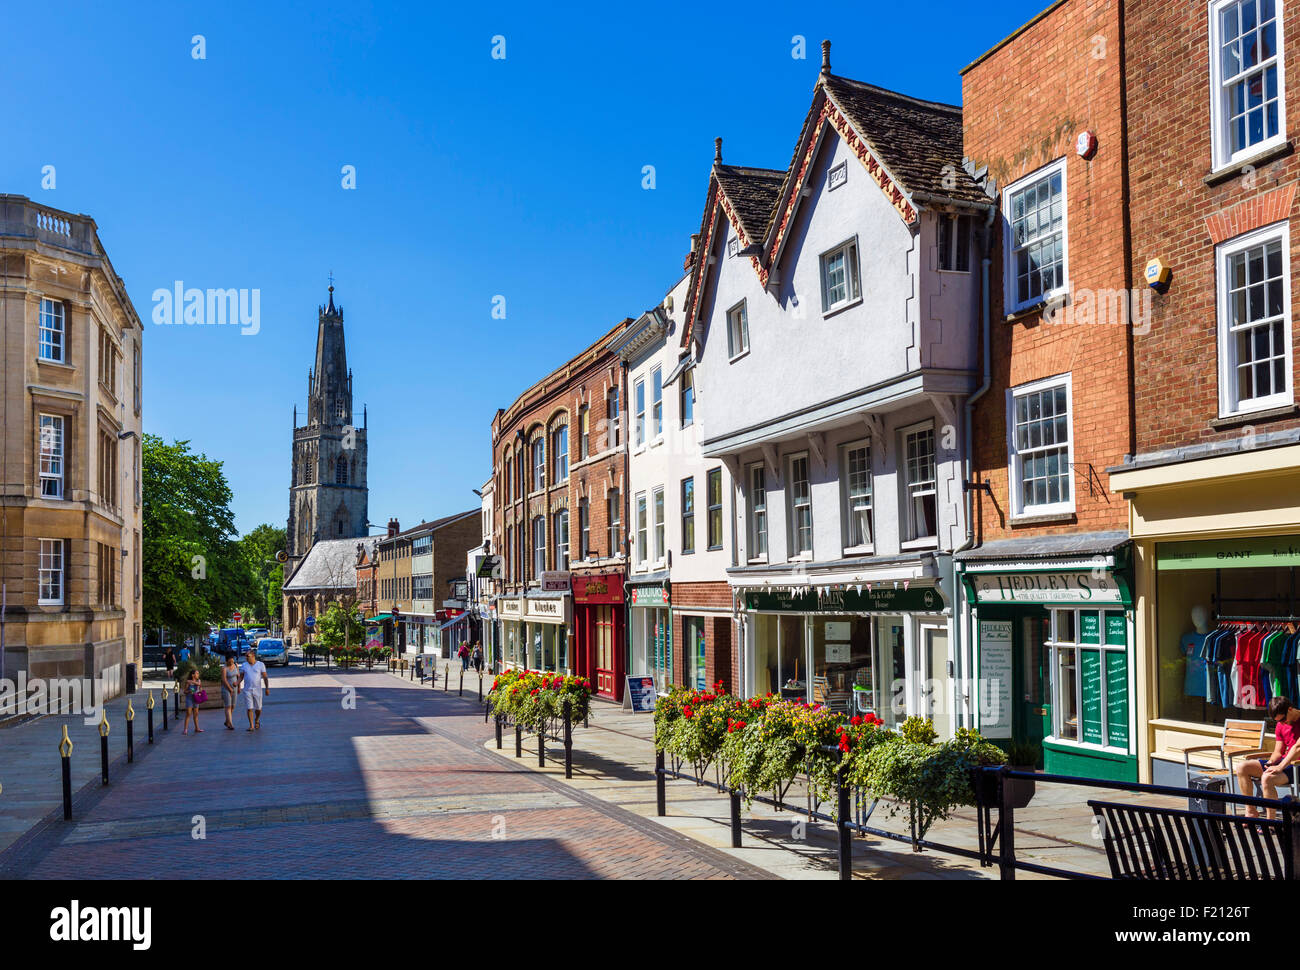 Westgate Street in the city centre looking towards St Nicholas church, Gloucester, Gloucestershire, England, UK - Stock Image